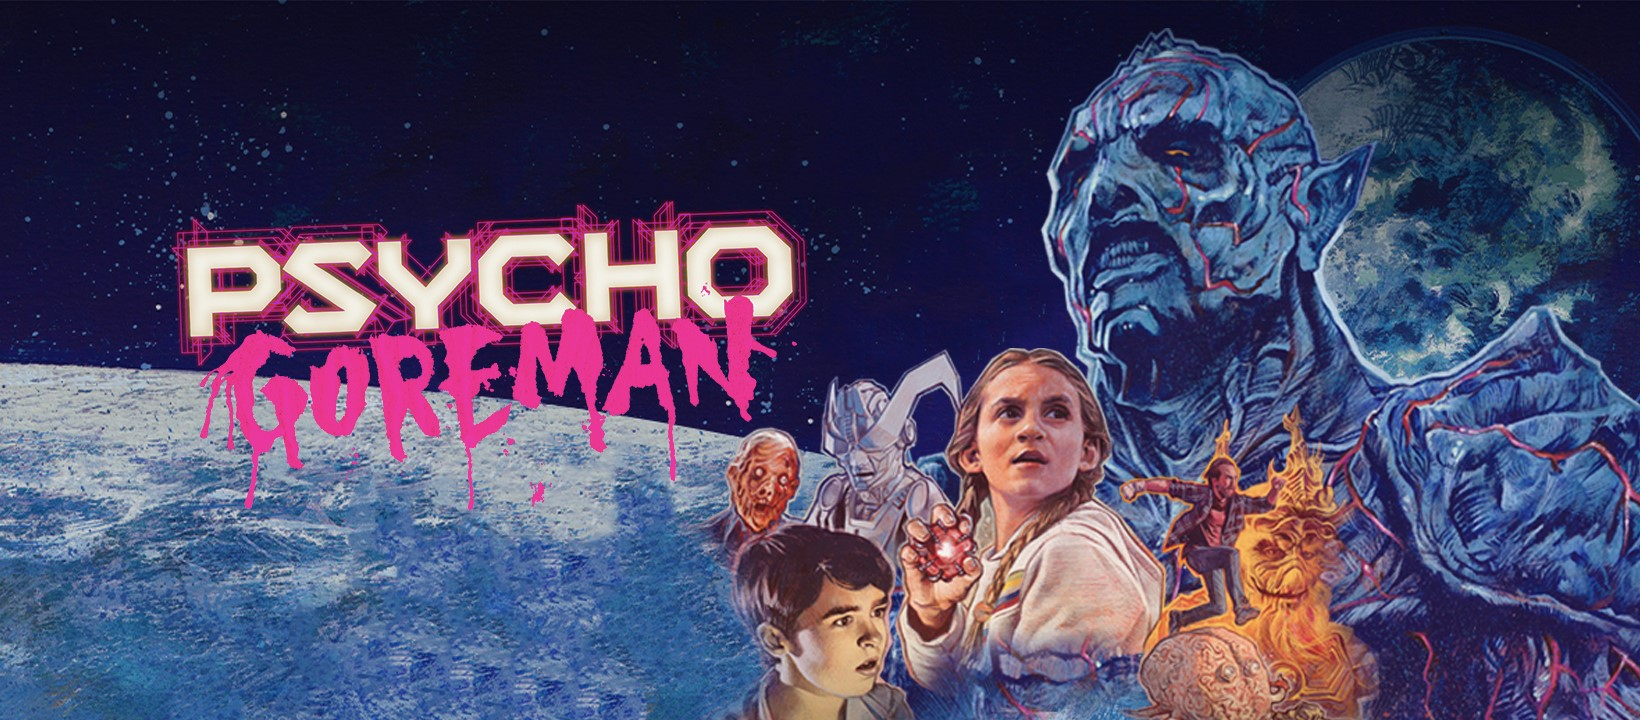 Hunky Boys and Horror Movies: An Interview With PSYCHO GOREMAN  Writer/Director Steven Kostanski - Cinepunx